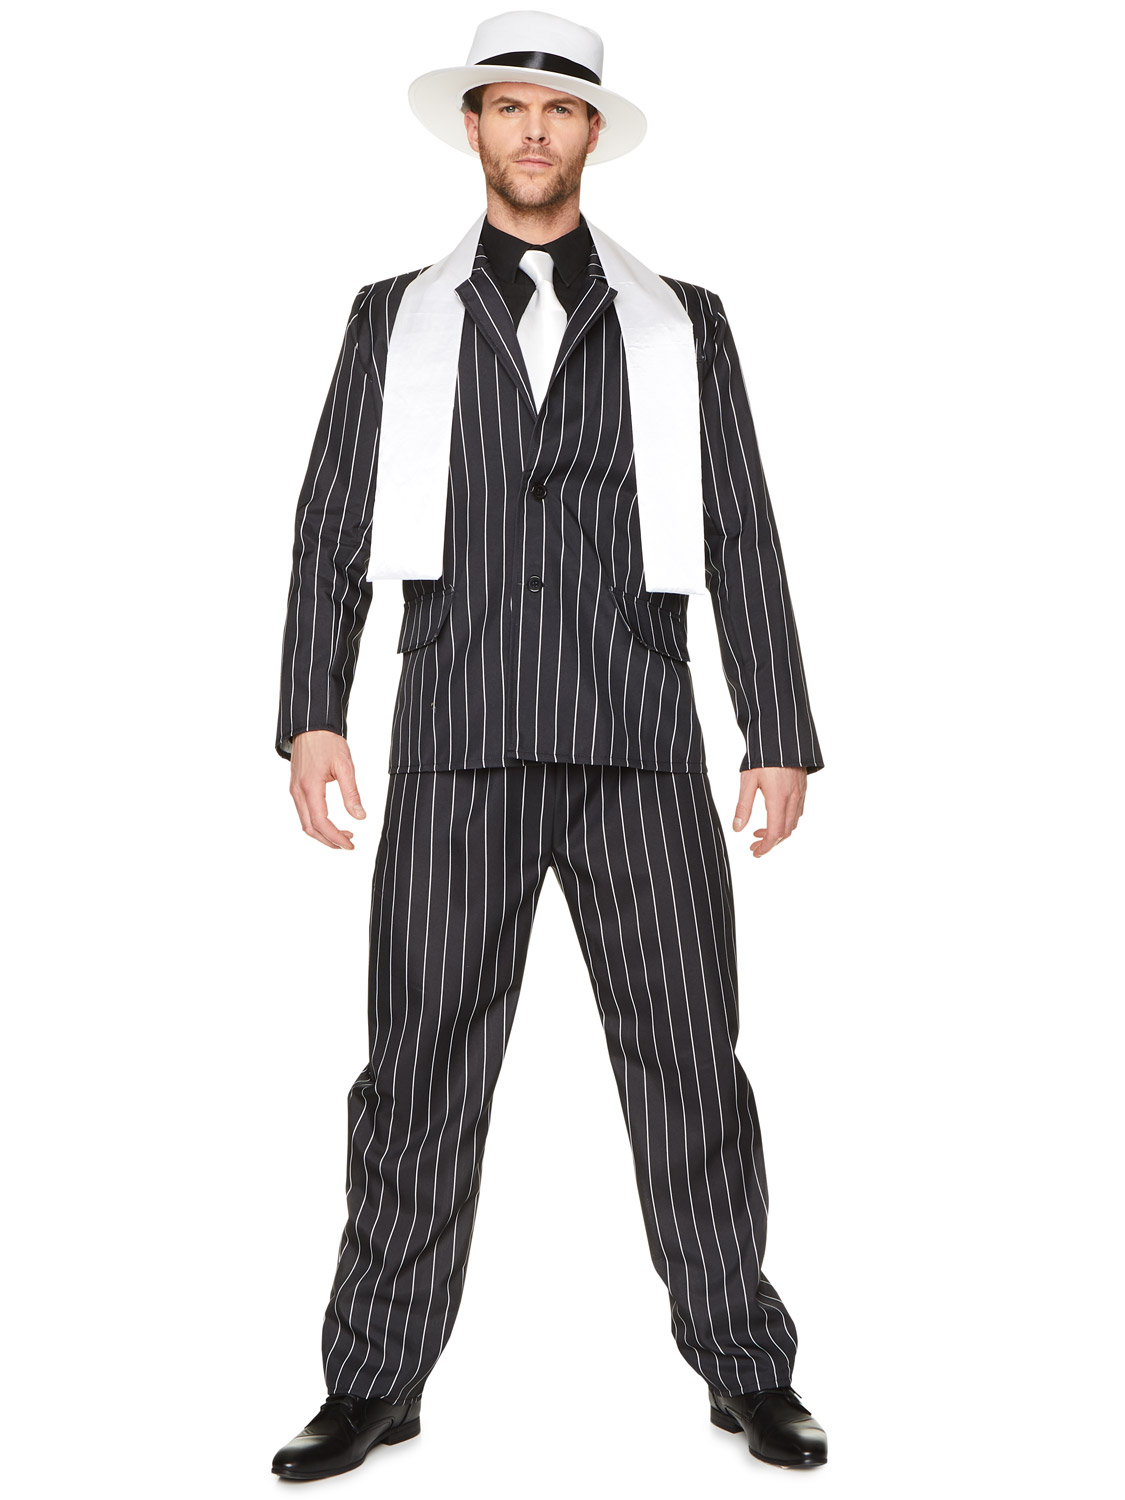 837c88ab8c7 Gangster Boss Mens Fancy Dress 20s Mafia Pinstripe Suit Adults 1920s Costume.  About this product. Picture 1 of 4  Picture 2 of 4  Picture 3 of 4 ...